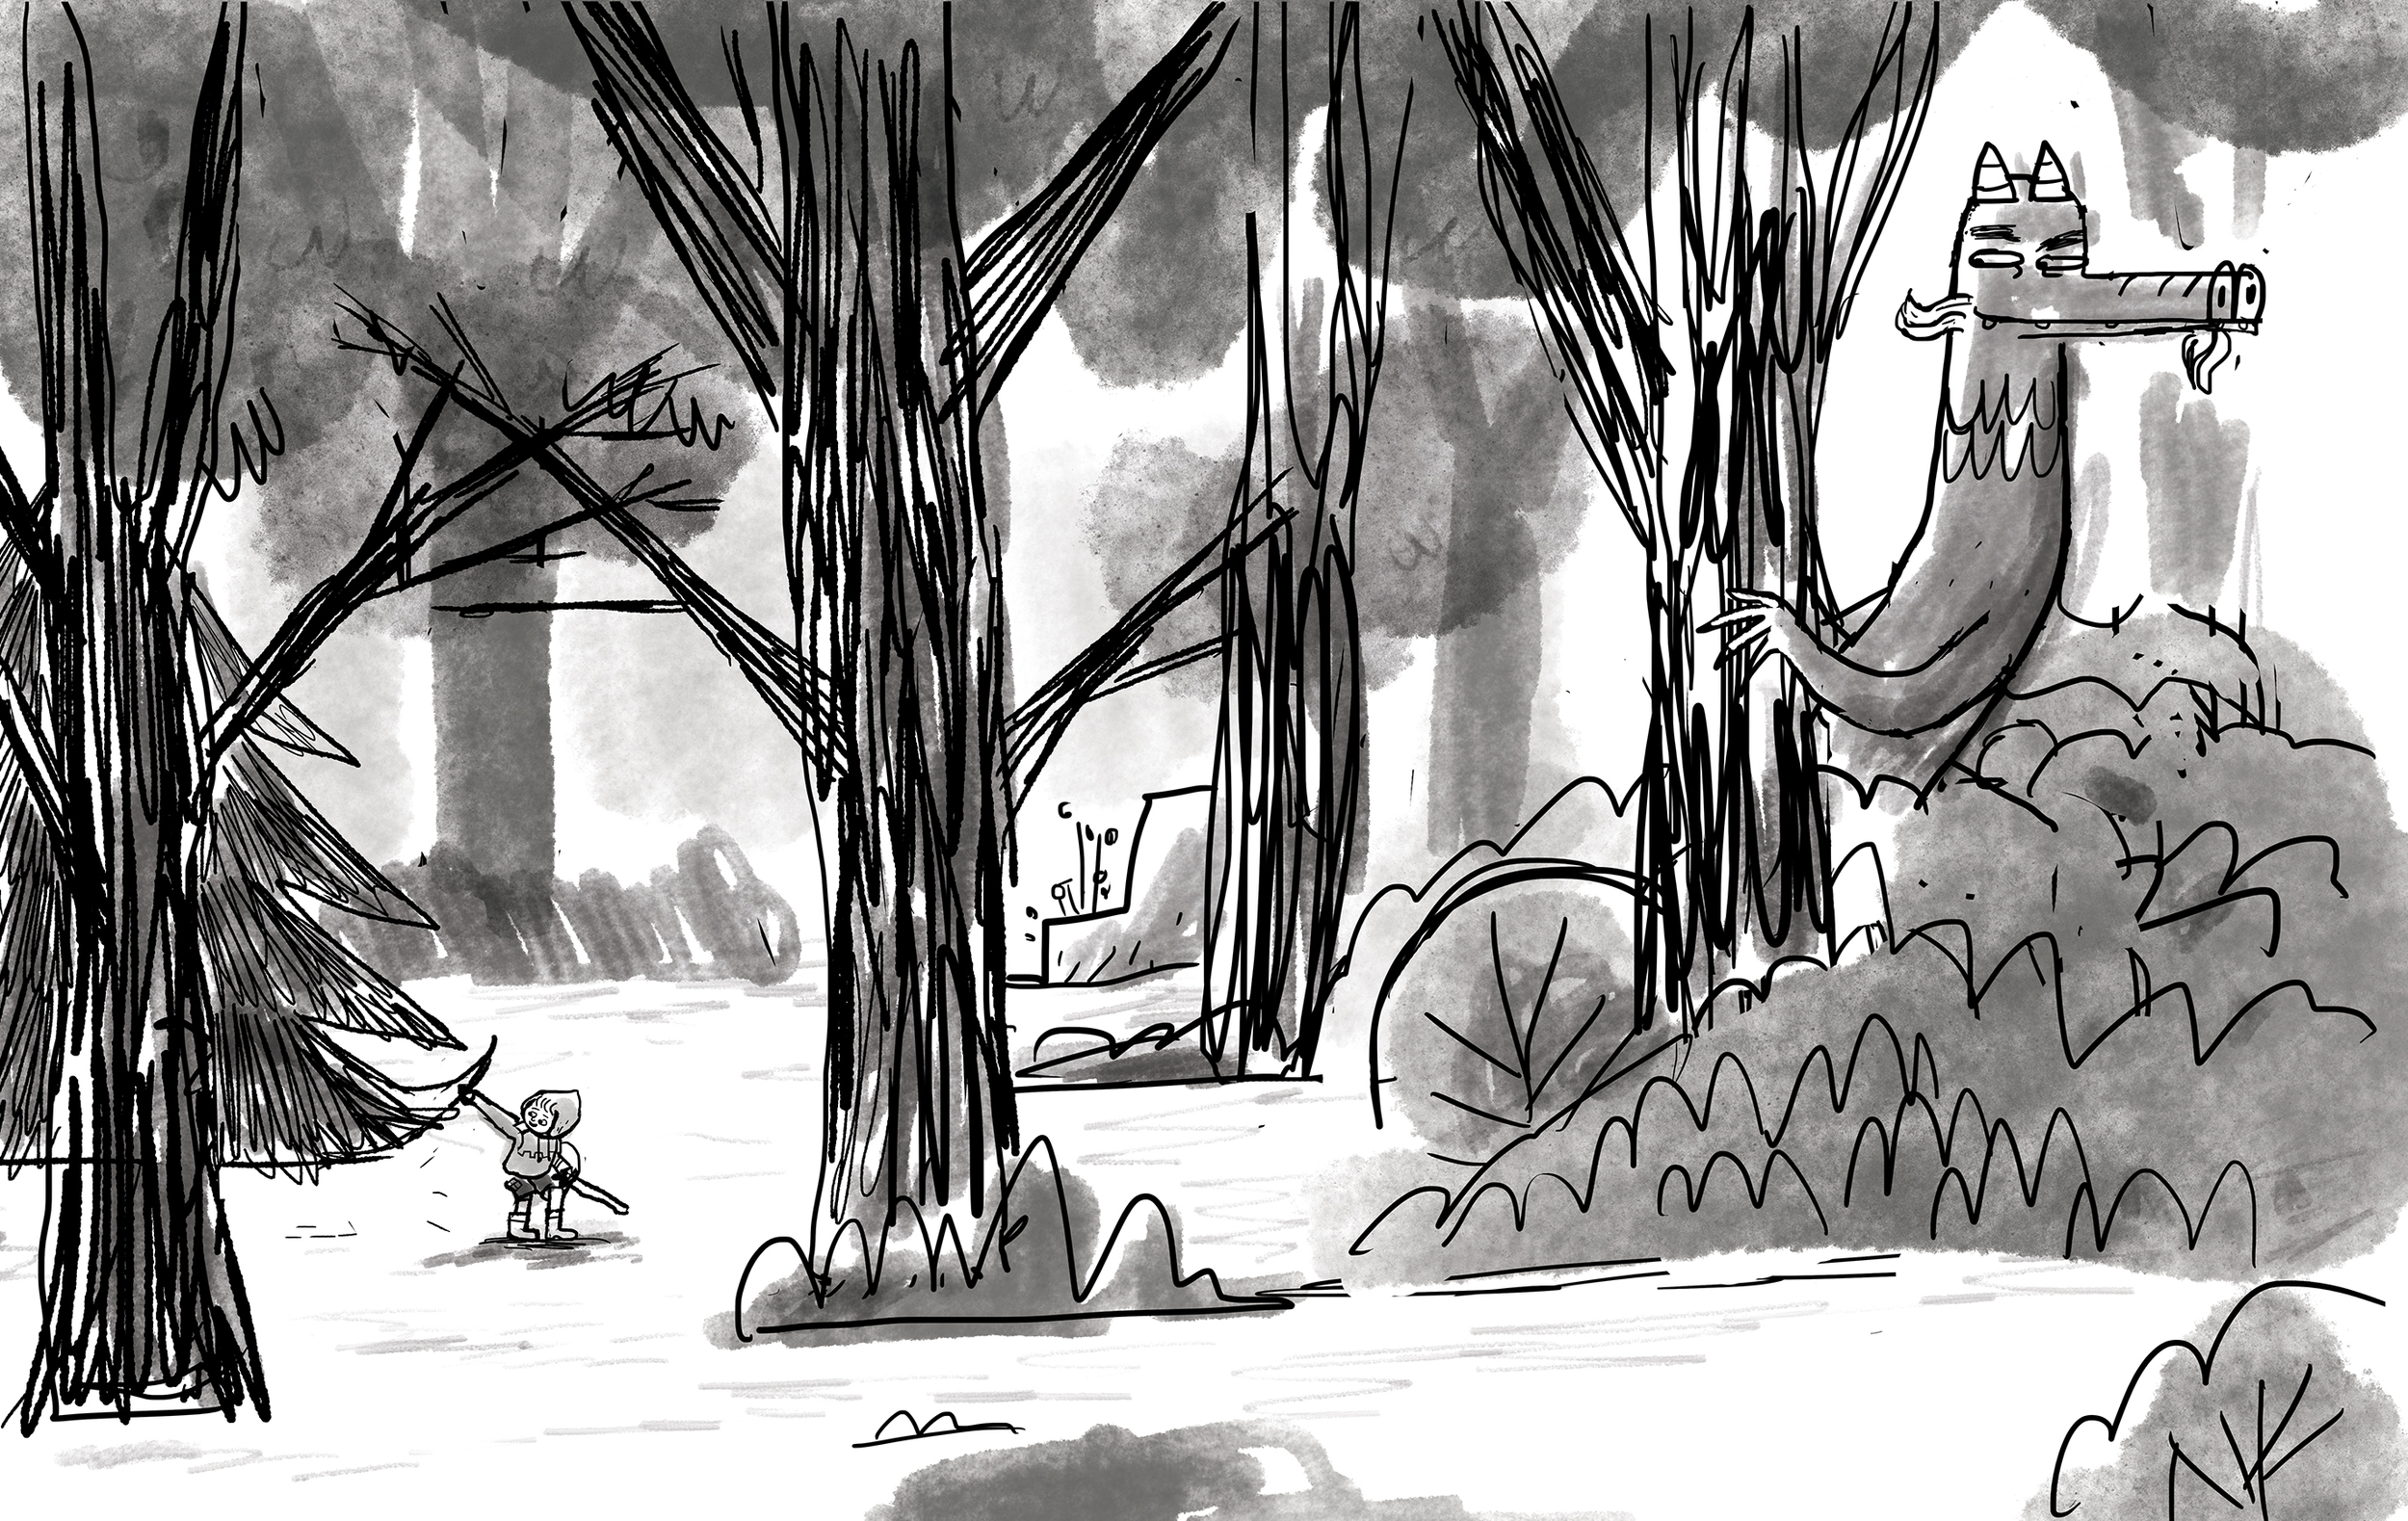 Here's the final sketch that was approved for final page (see final color drawings above).